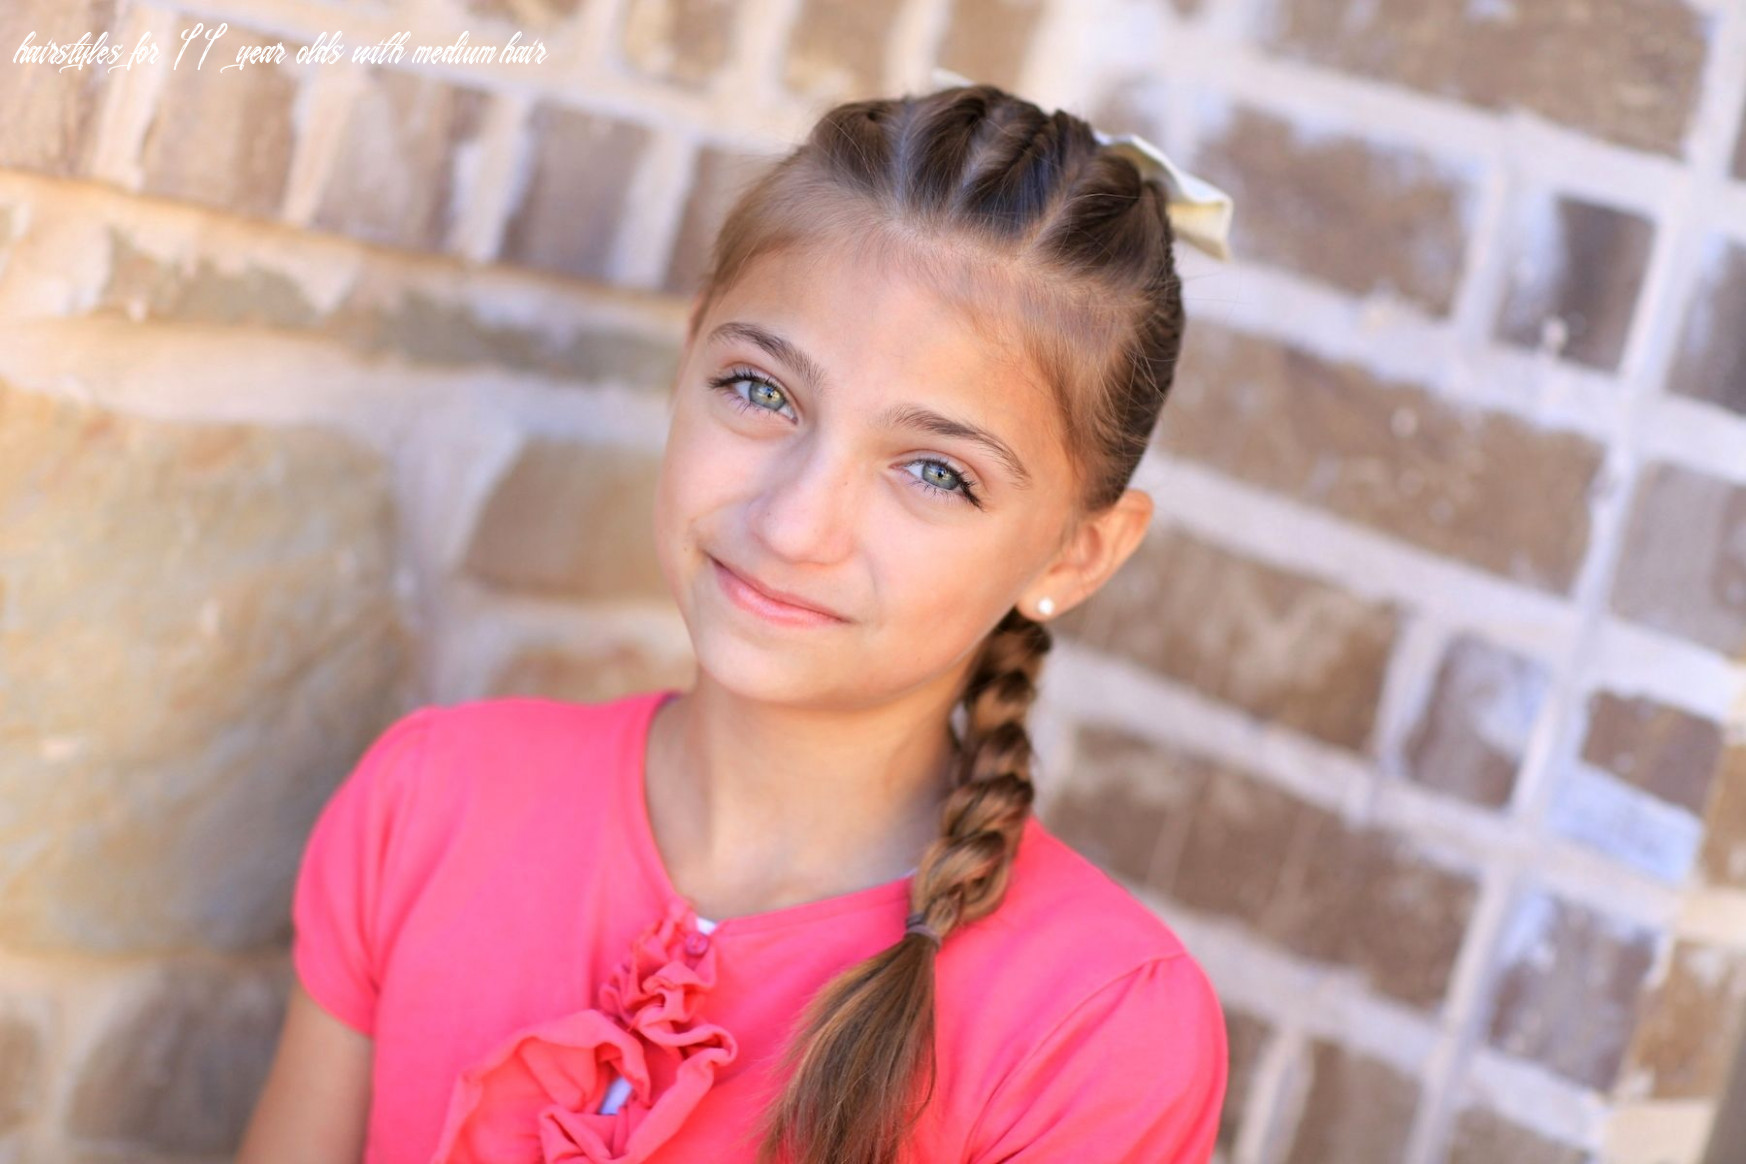 Pin on hair hairstyles for 11 year olds with medium hair